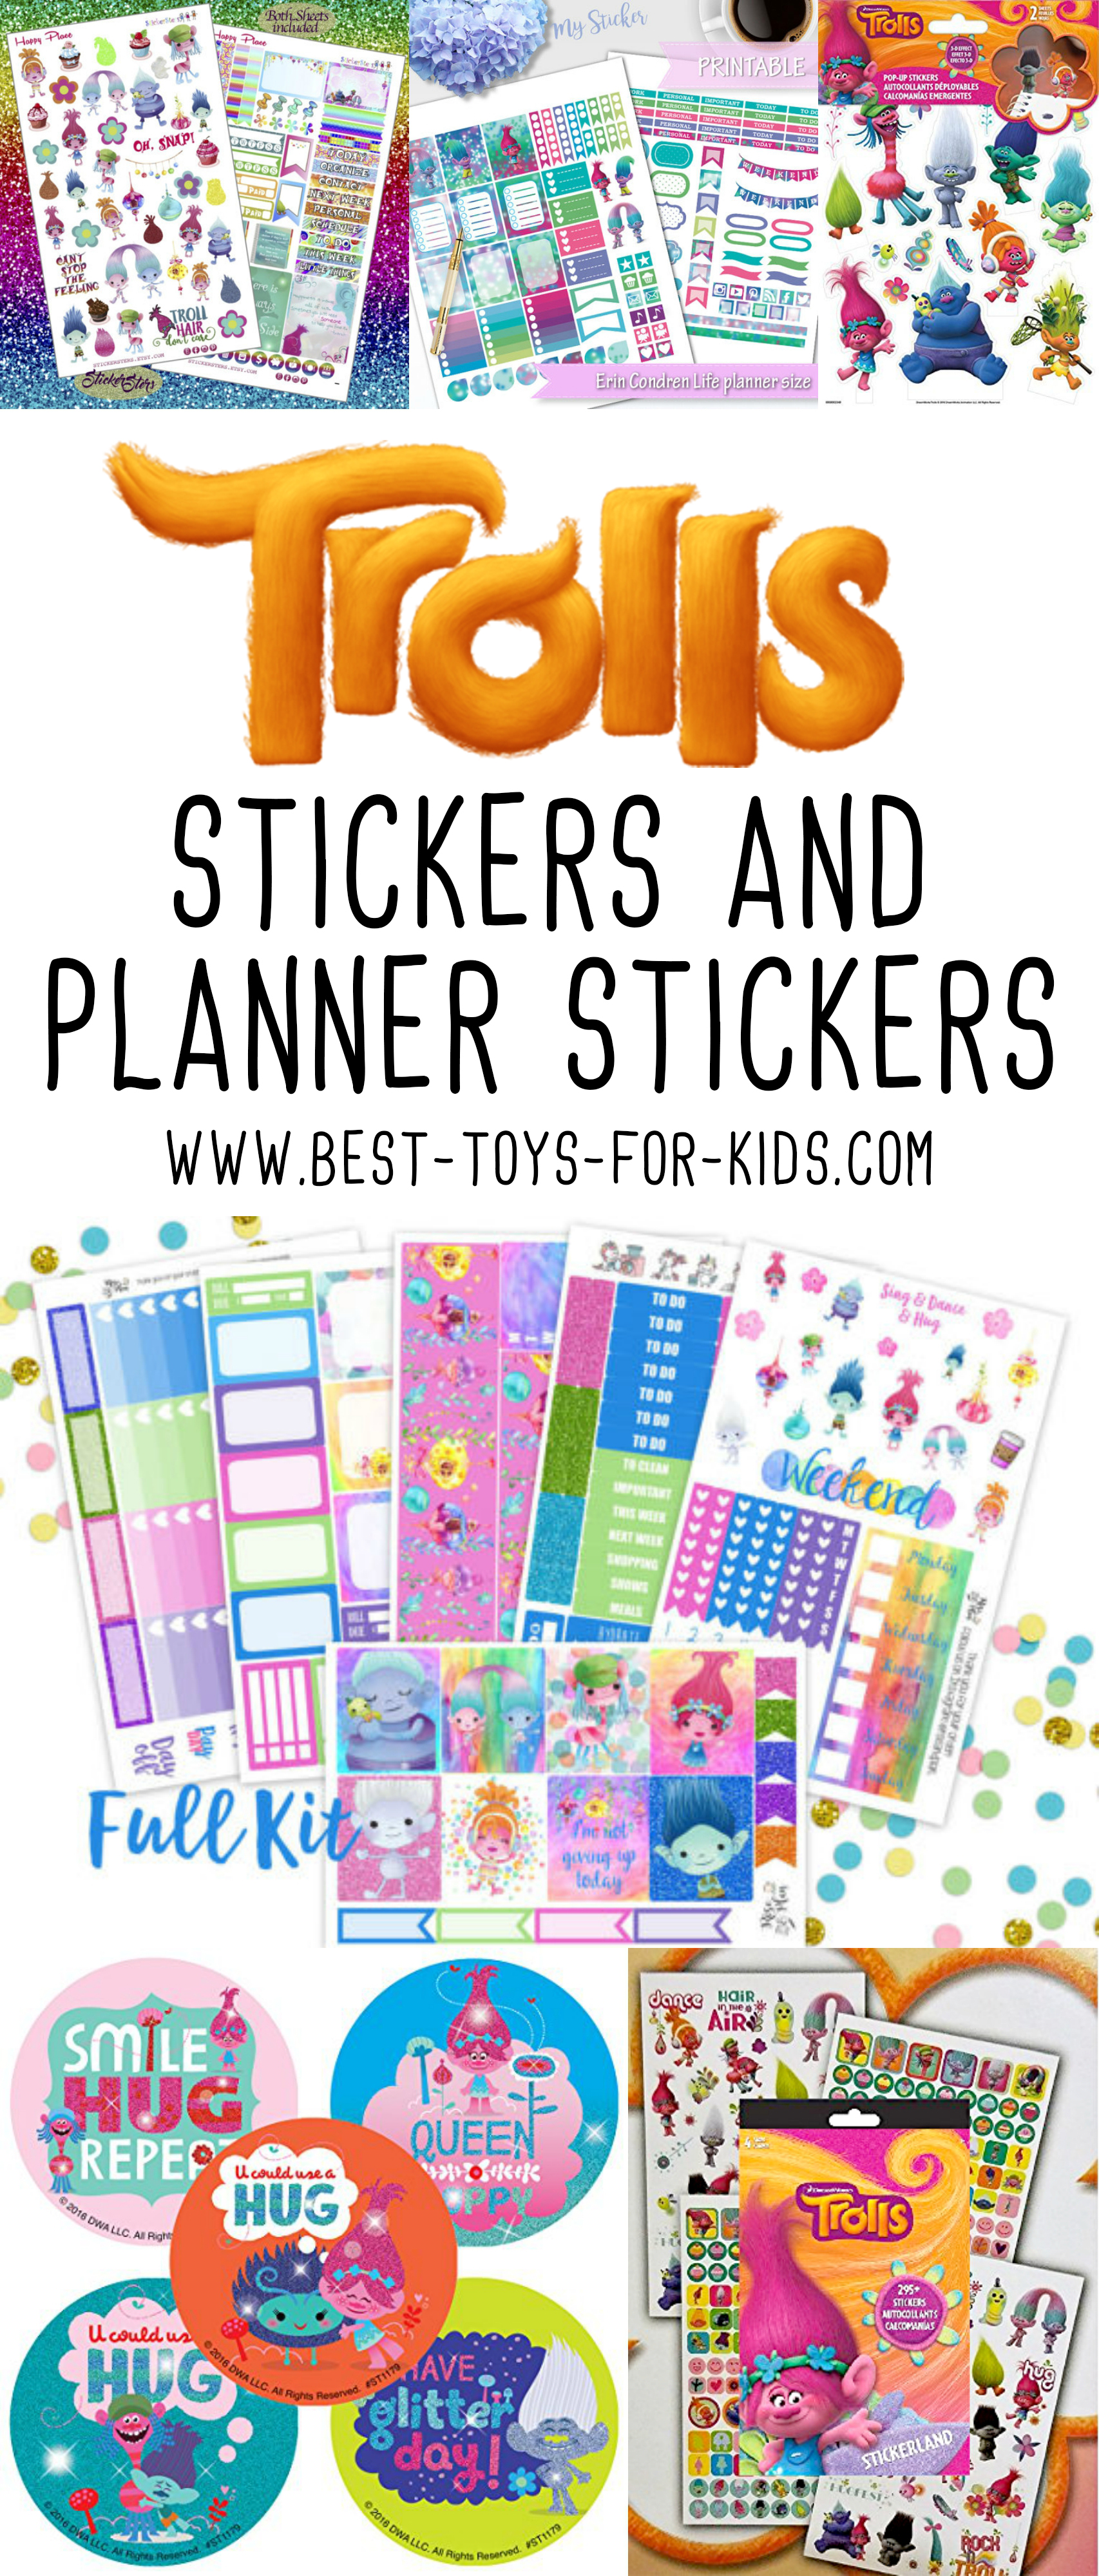 Trolls Stickers and Daily Planner Stickers